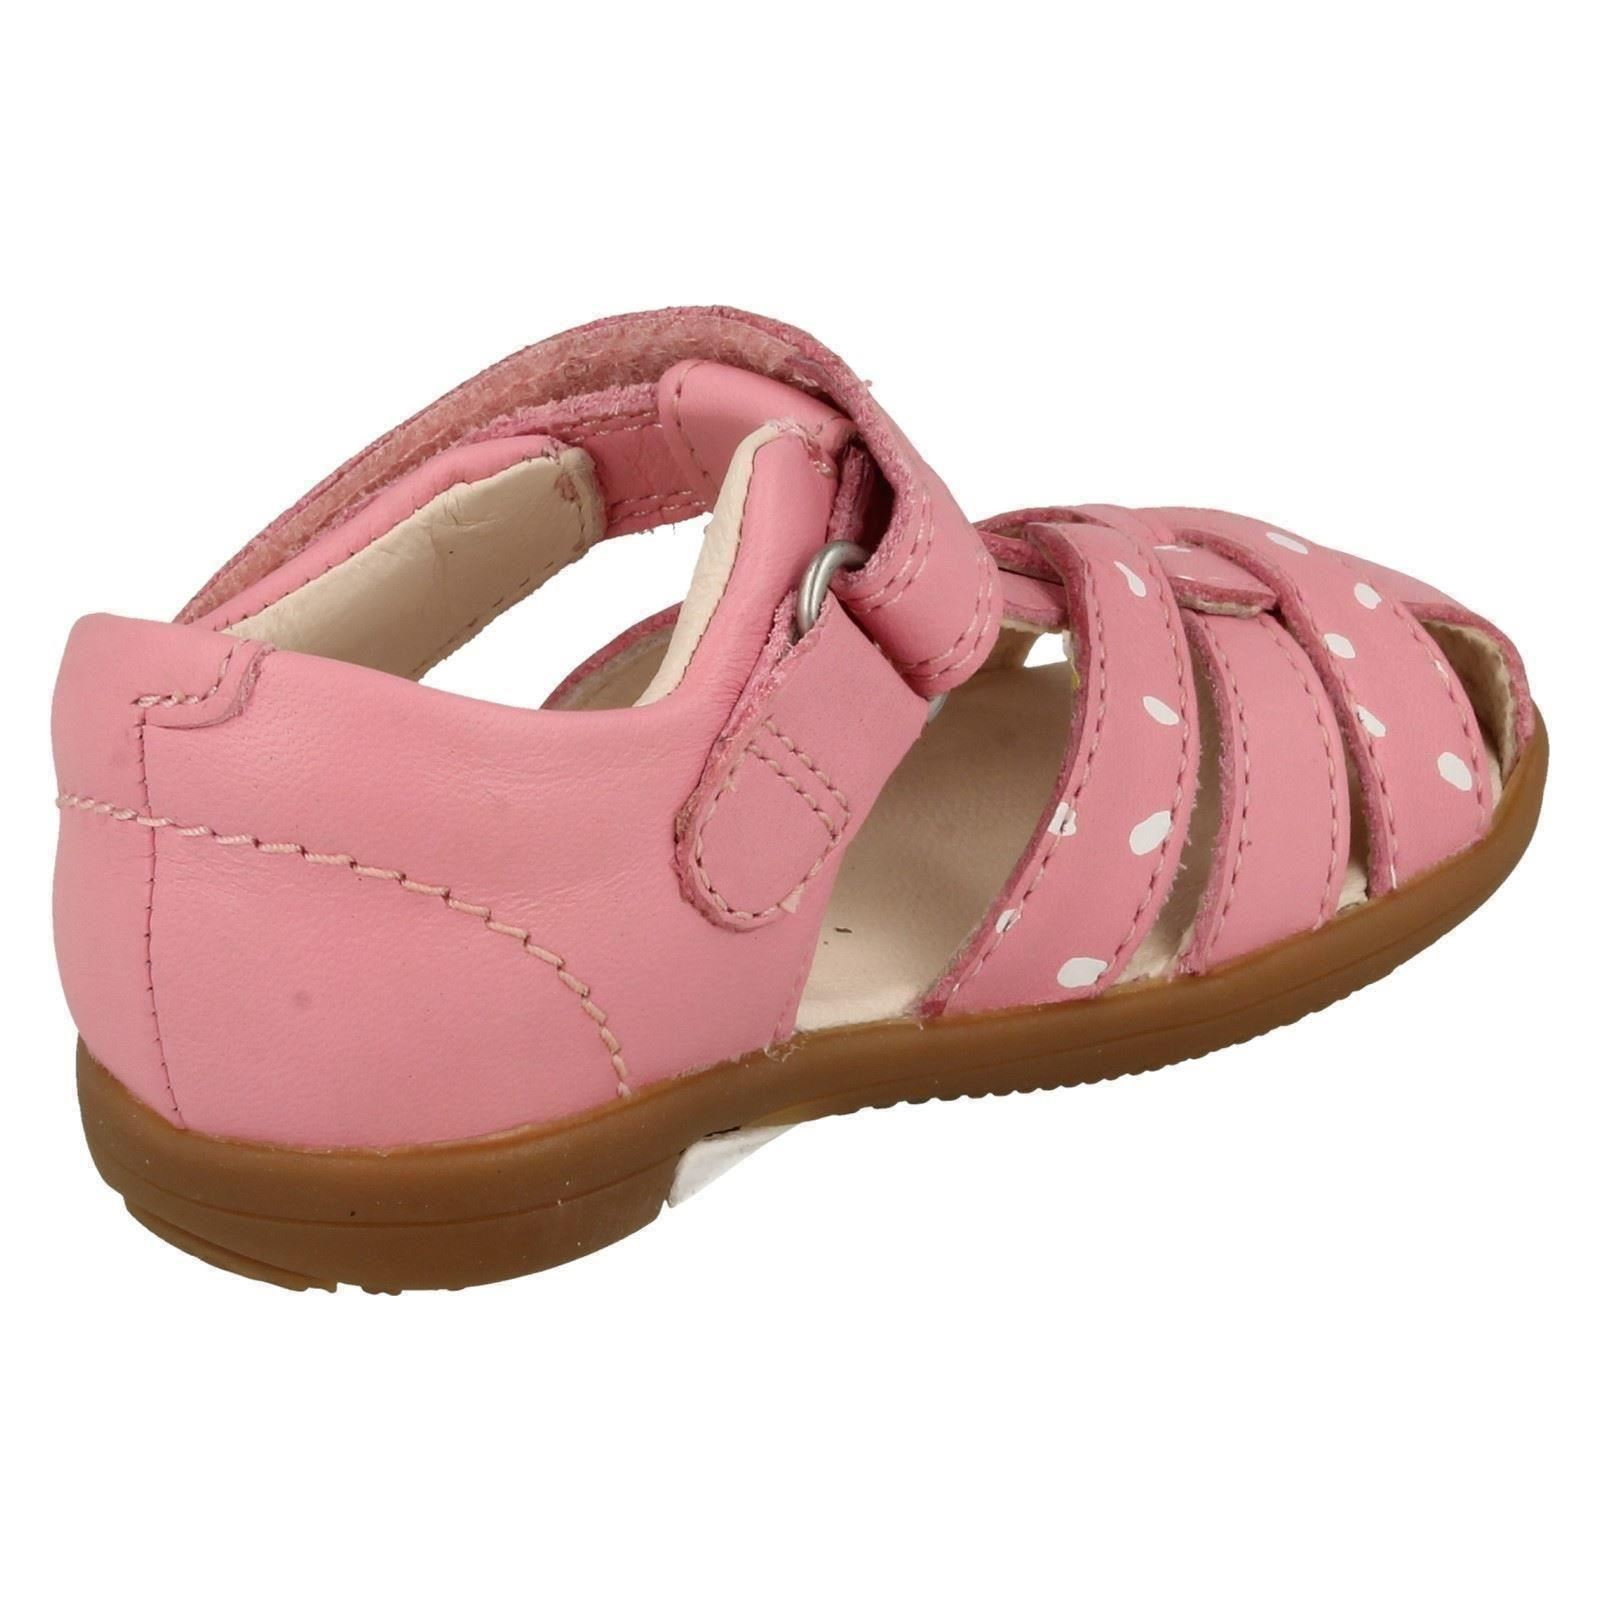 17f786d1b2a4 Girls Clarks First Shoes Closed Toe Summer Sandals  Softly Mae